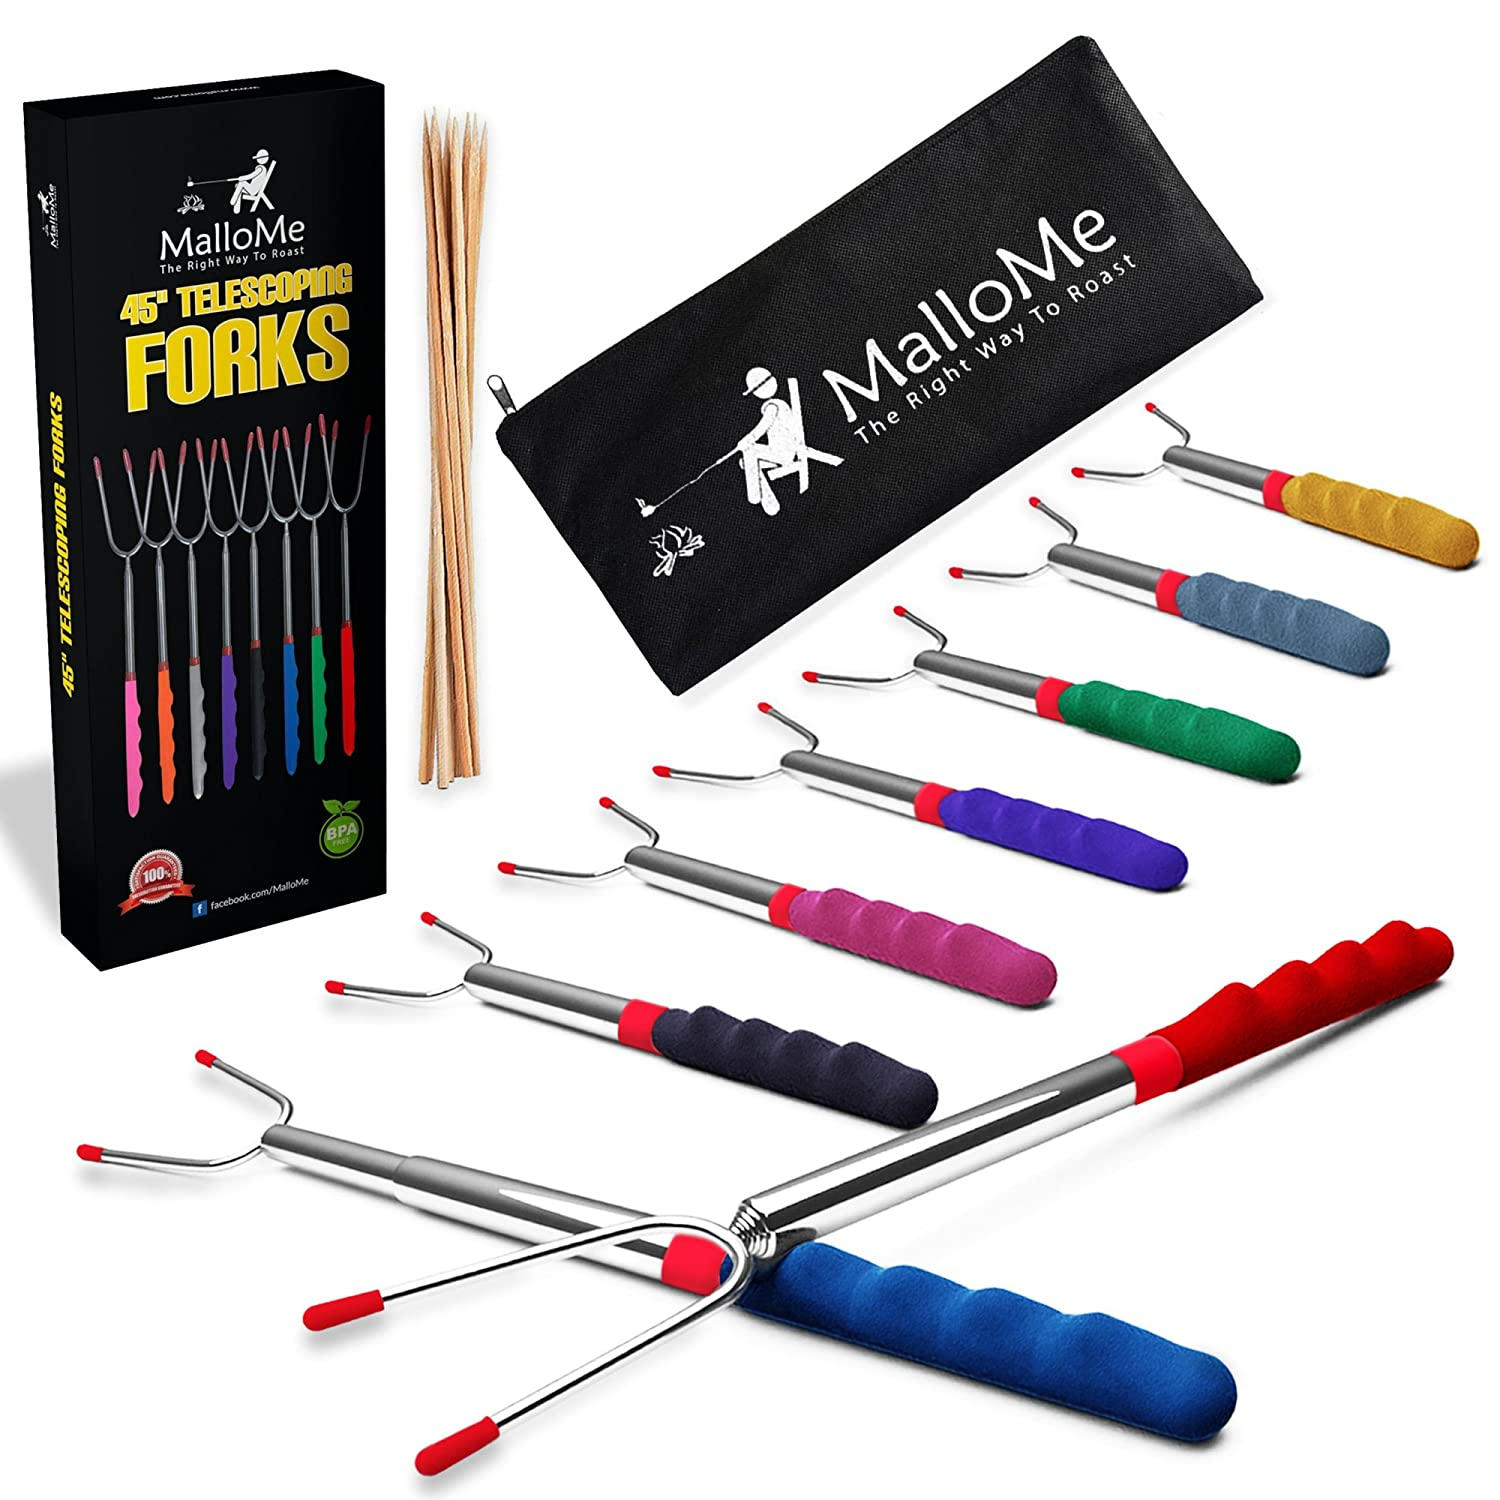 Marshmallow Roasting Sticks 8 Fork Set for Patio Fire Pit and Campfire Cooking. Superior 32 Telescoping BBQ Accessories are Perfect for Kids | FREE Canvas Travel Bag Pouch, 10 Bamboo Smores Skewers, & Ebook. Roast & Relax With Family & Friends